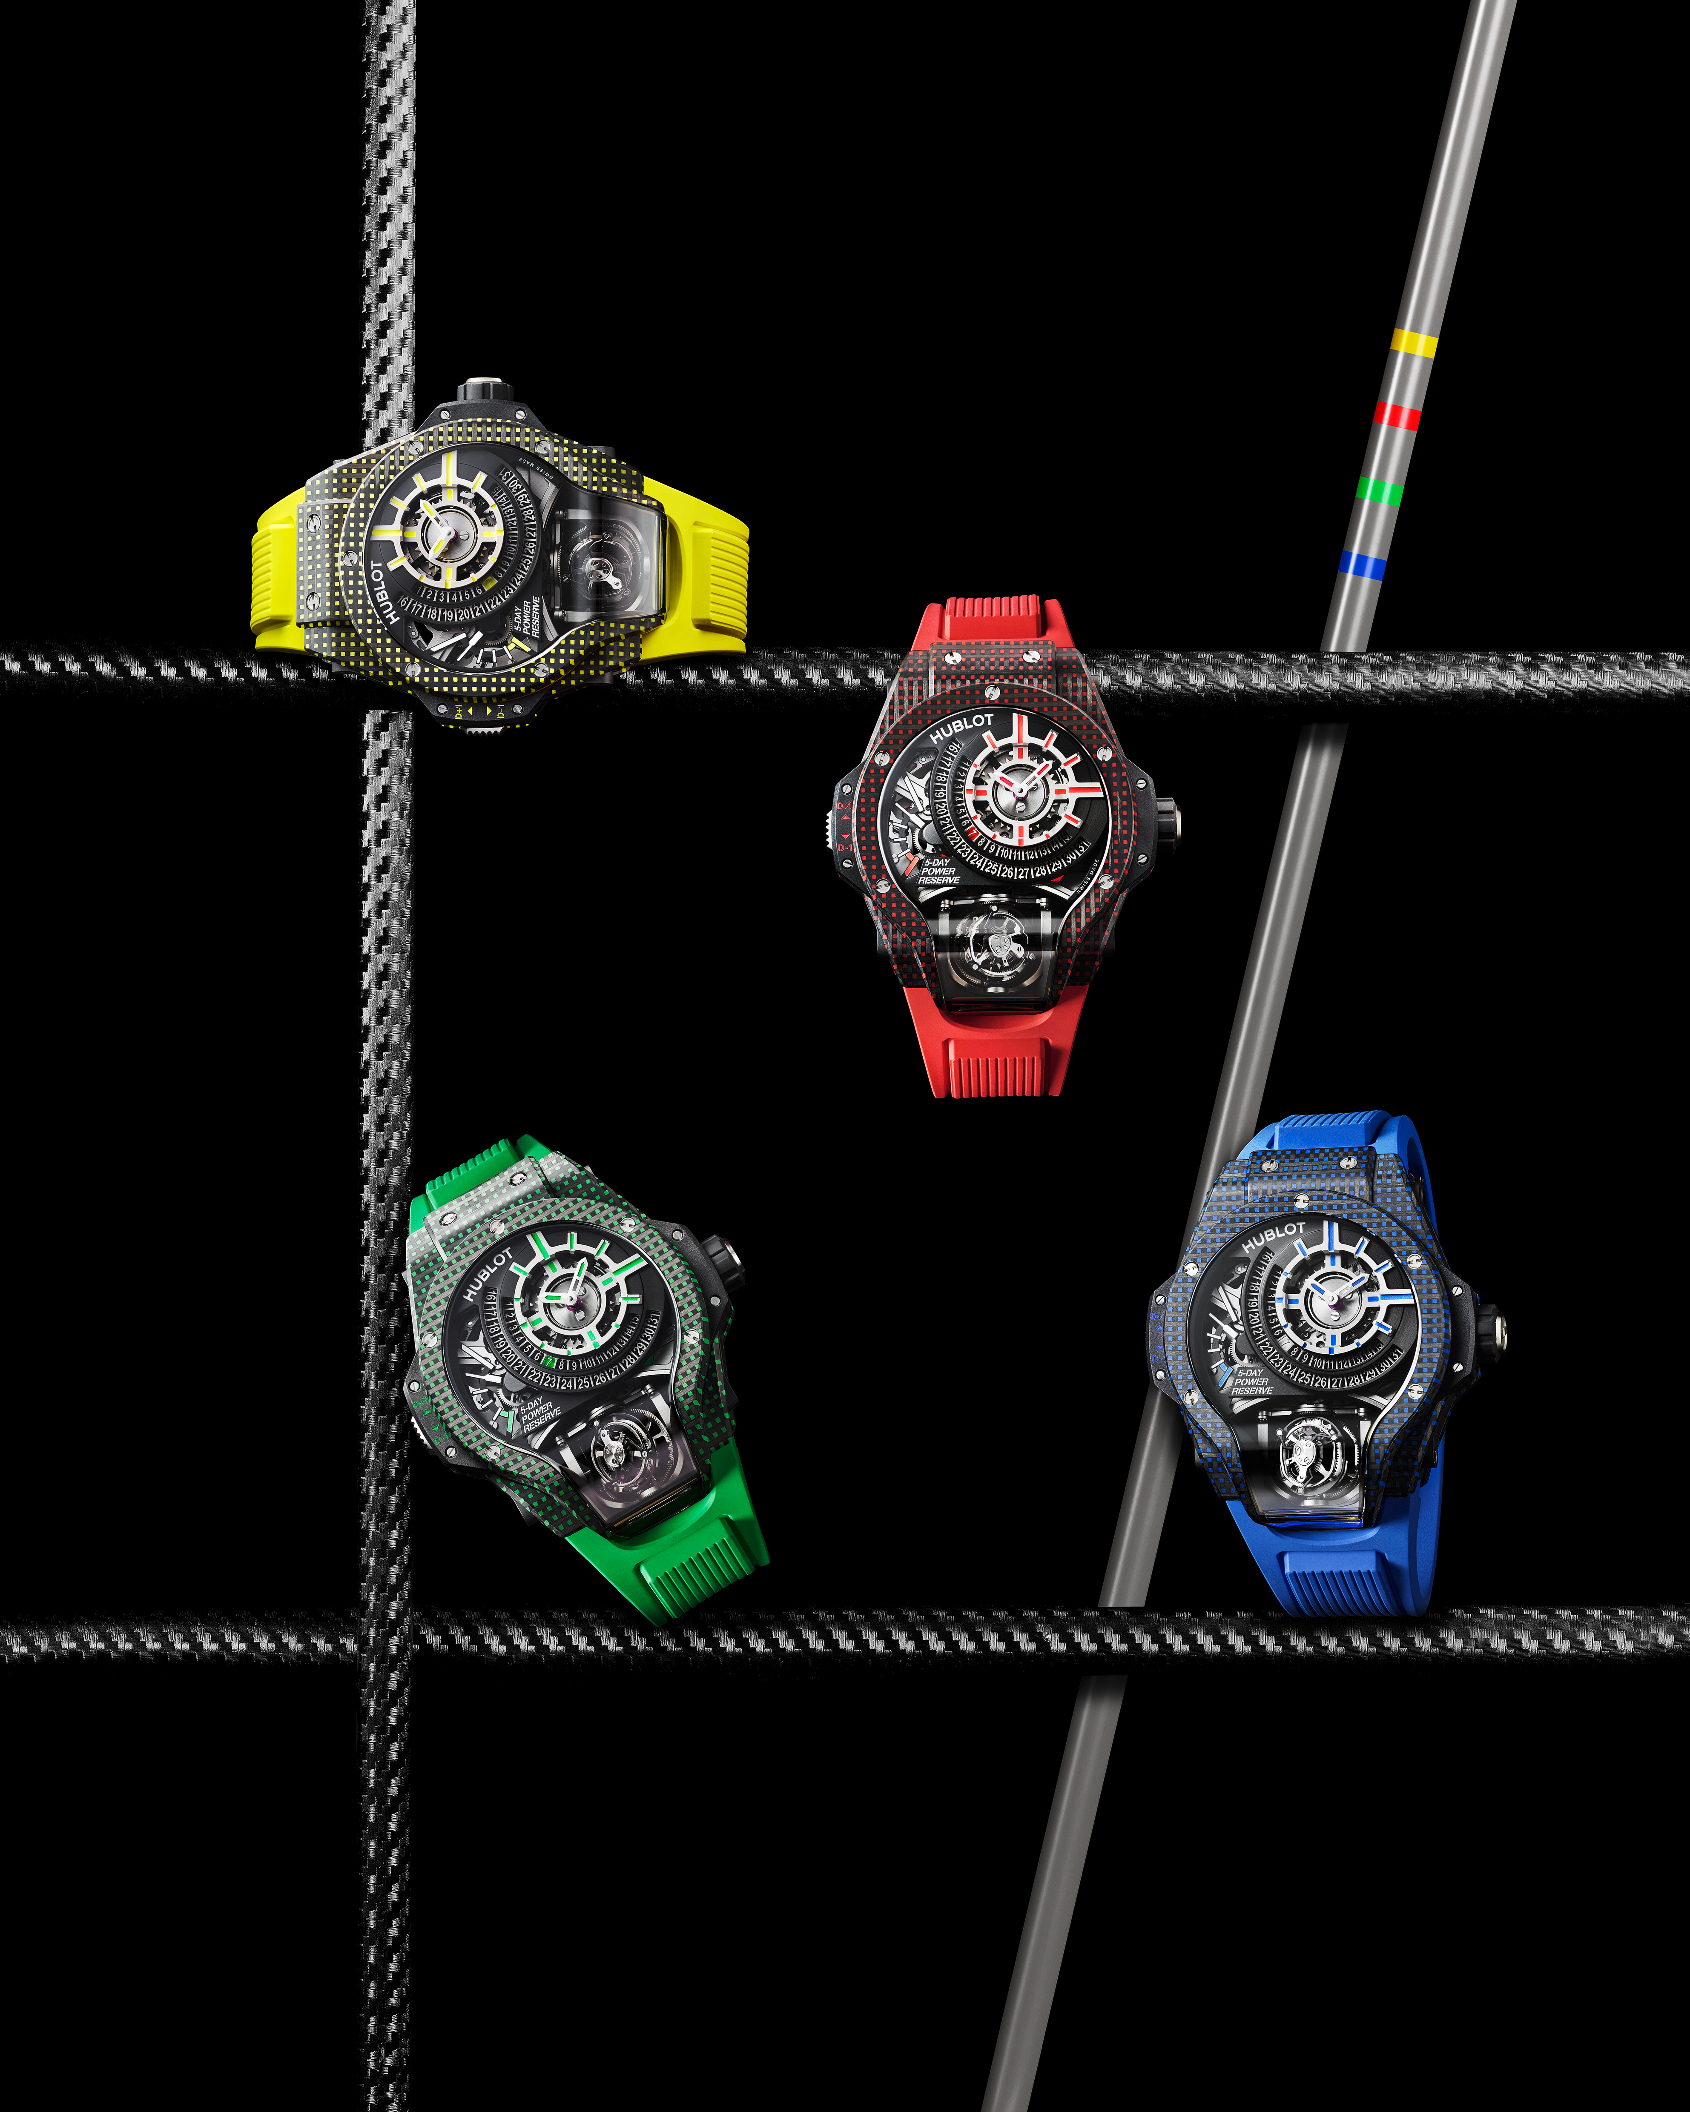 The new Hublot MP-09 Tourbillon Bi-Axis collection is spectacular watchmaking in a blaze of colour